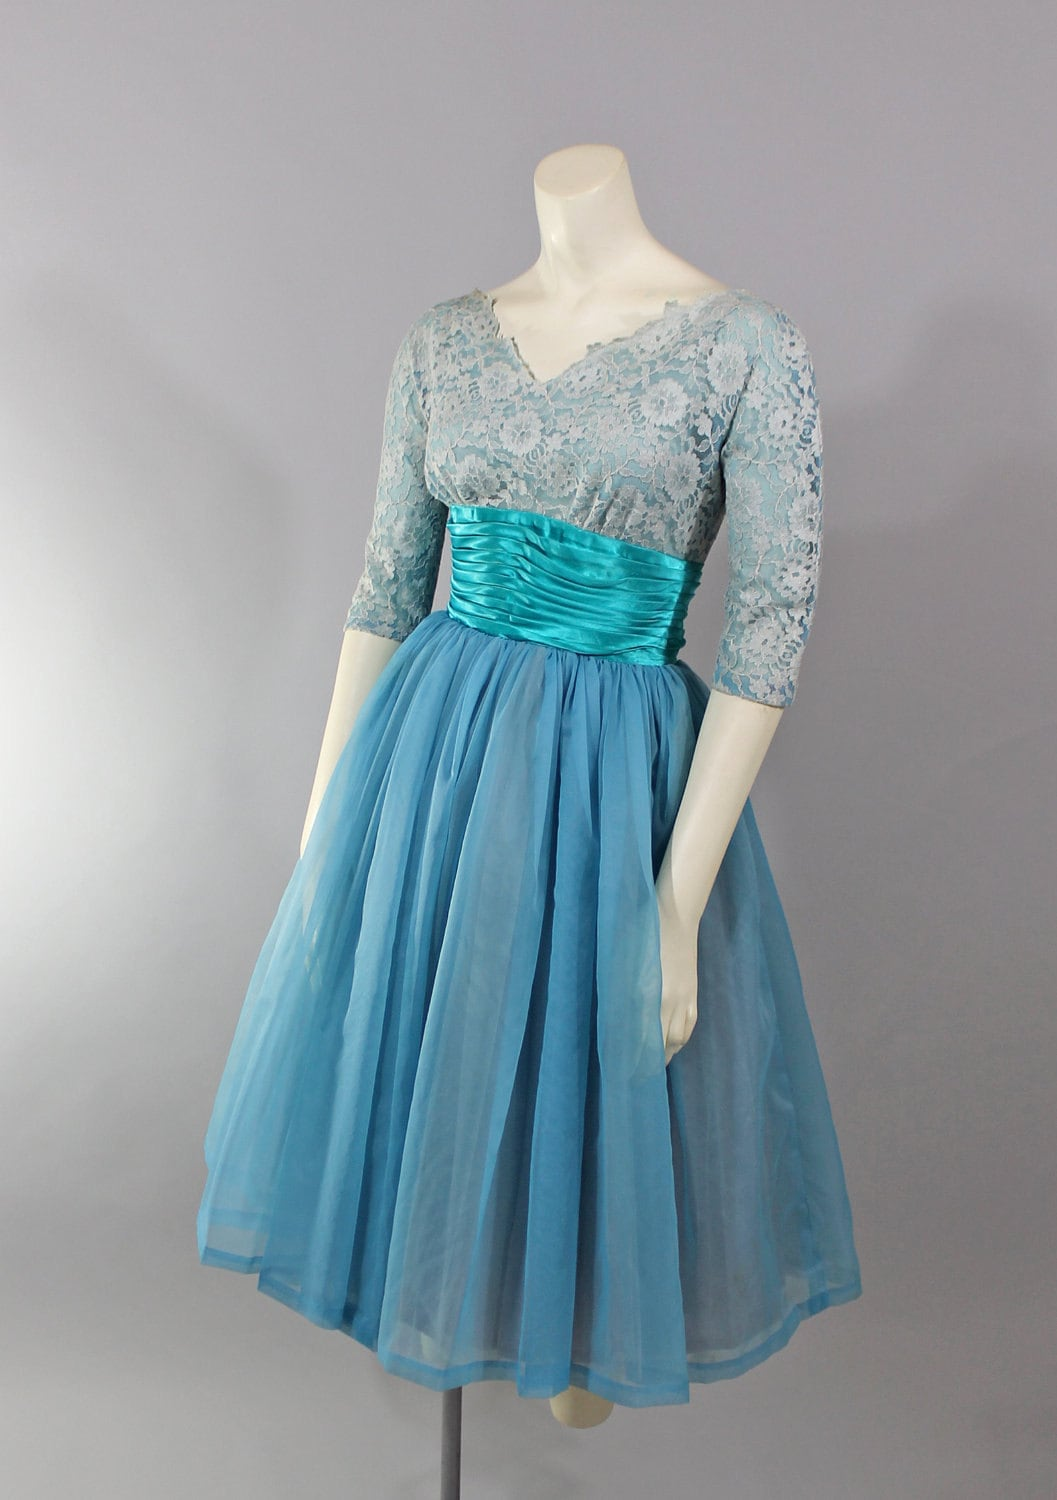 Baby Blue And White 10 Year Bedrooms: 1950s Vintage Dress...Pastel Fashion Baby Blue Lace Illusion